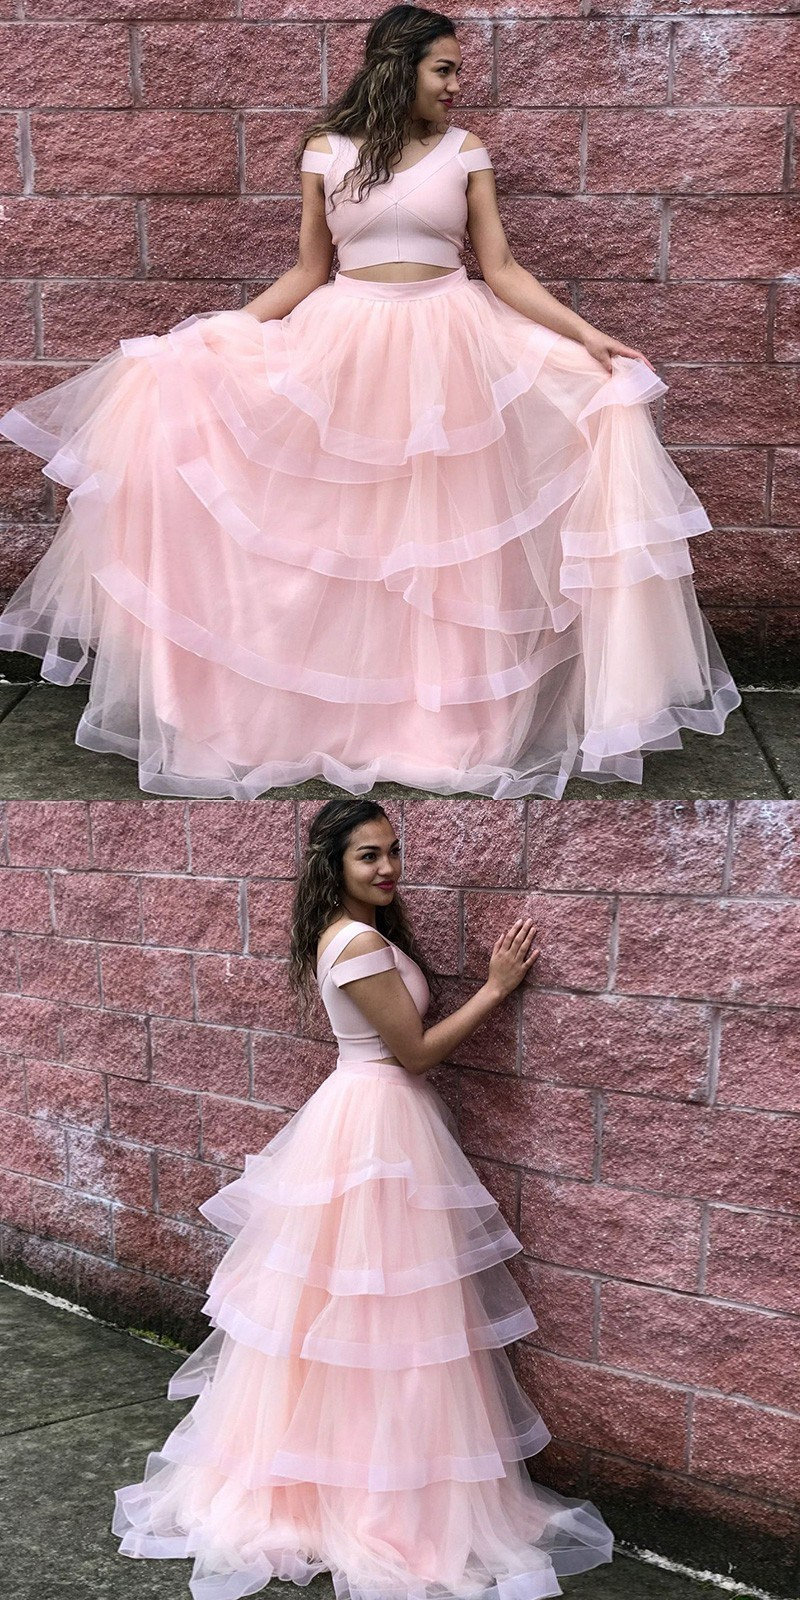 4b0dc768adb34 Princess Two Piece Pink Long Prom Dress,Tulle Evening Dresses, 2 Pieces  Cocktail Dresses ,2018 Long Evening Dress, Formal Lady Gowns